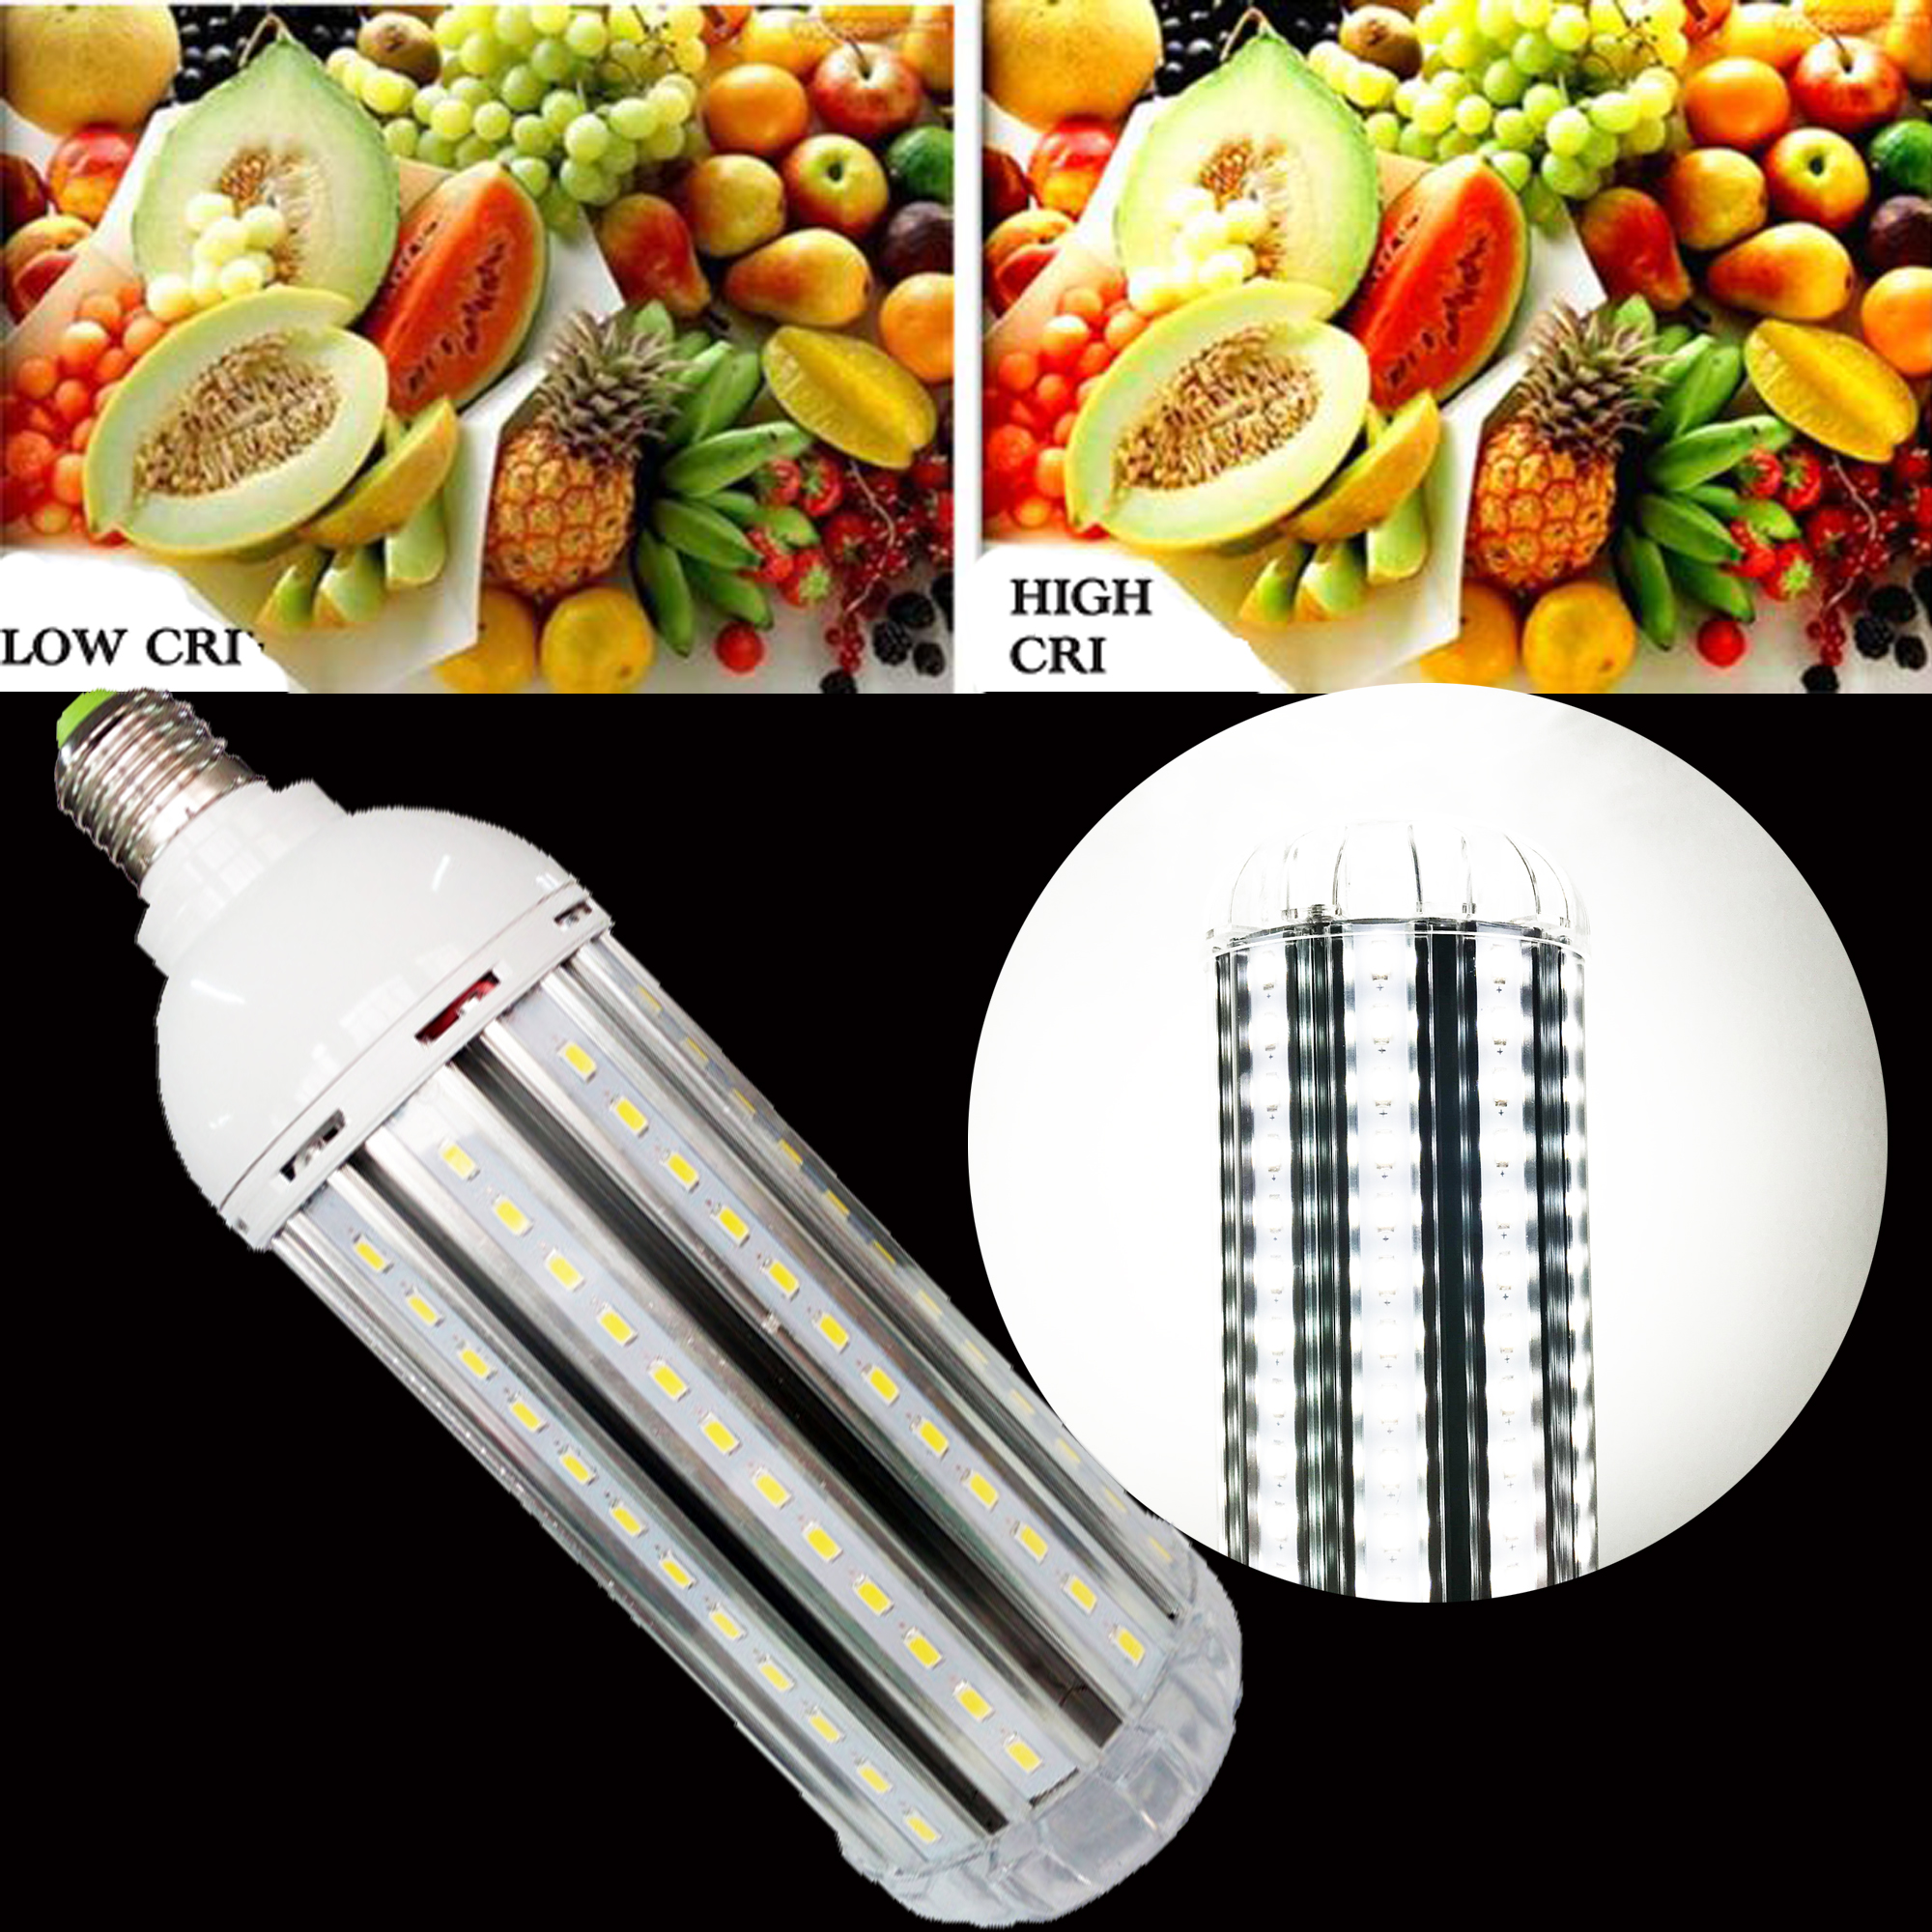 High CRI RA 95+ E27 LED Corn Light 40W AC85-265V Ultra Bright 5500K Daylight White 4000LM For Photography Video Studio Lighting